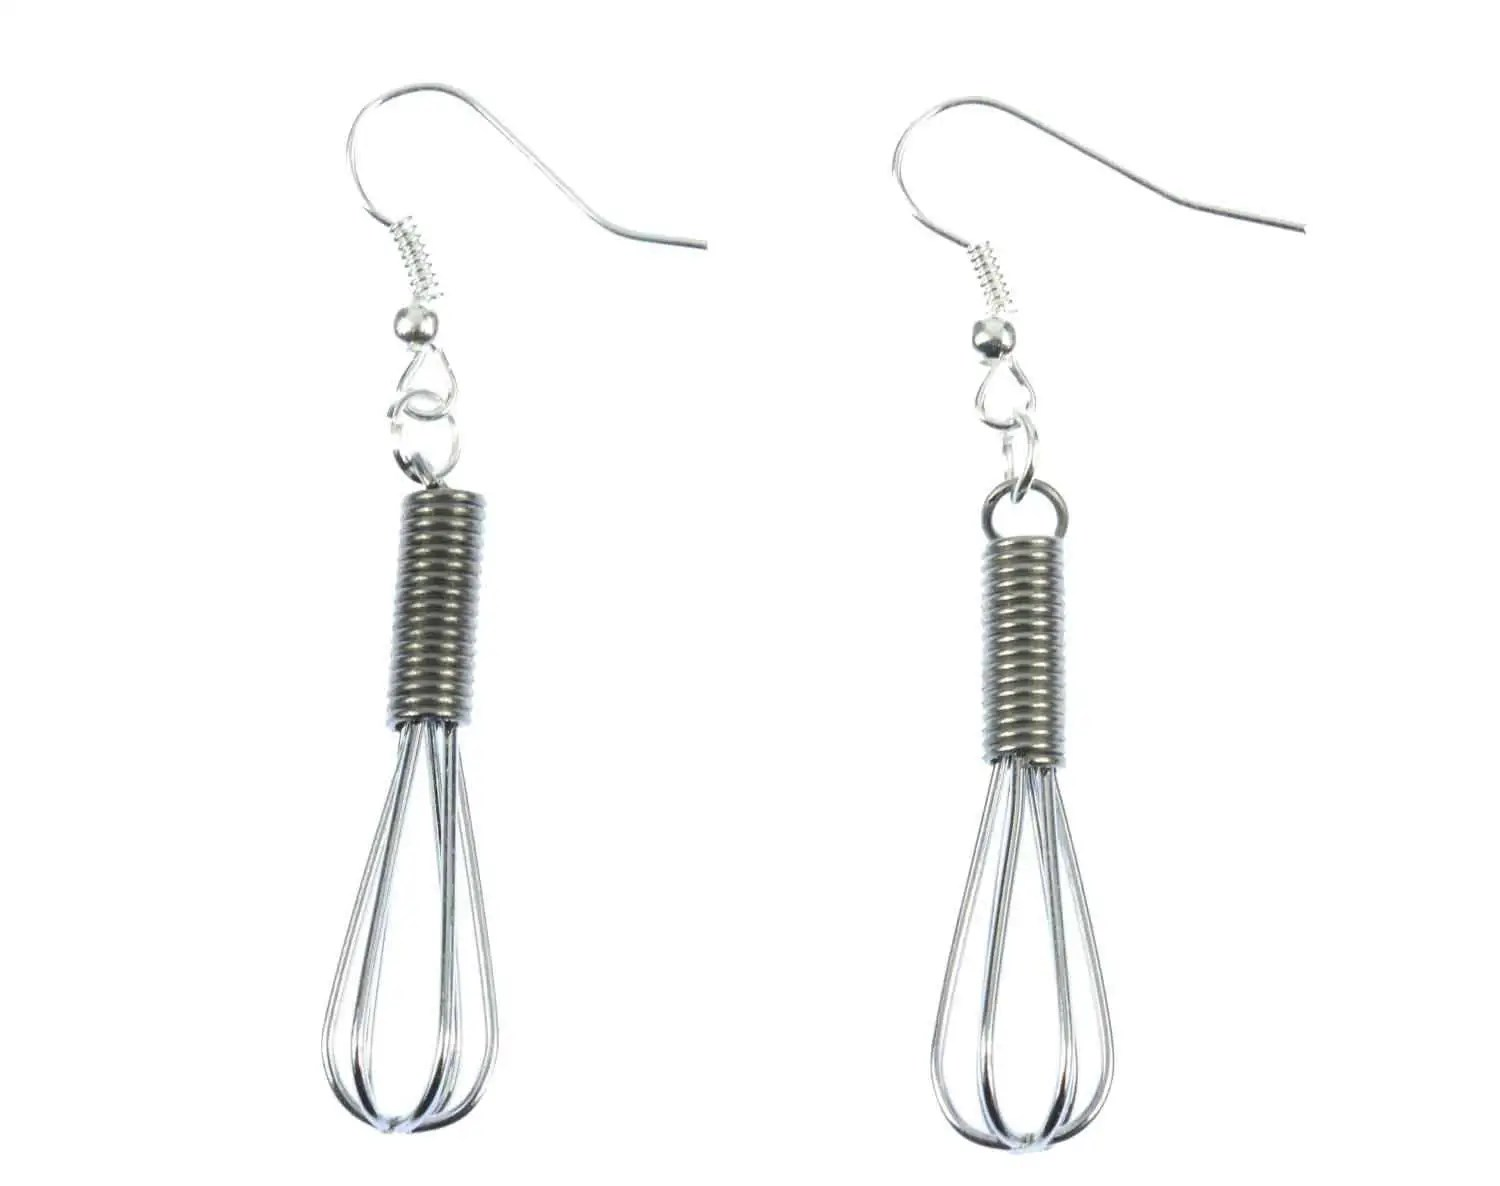 Whisk Earrings Miniblings Whisk Food Cook Kitchen Cooking